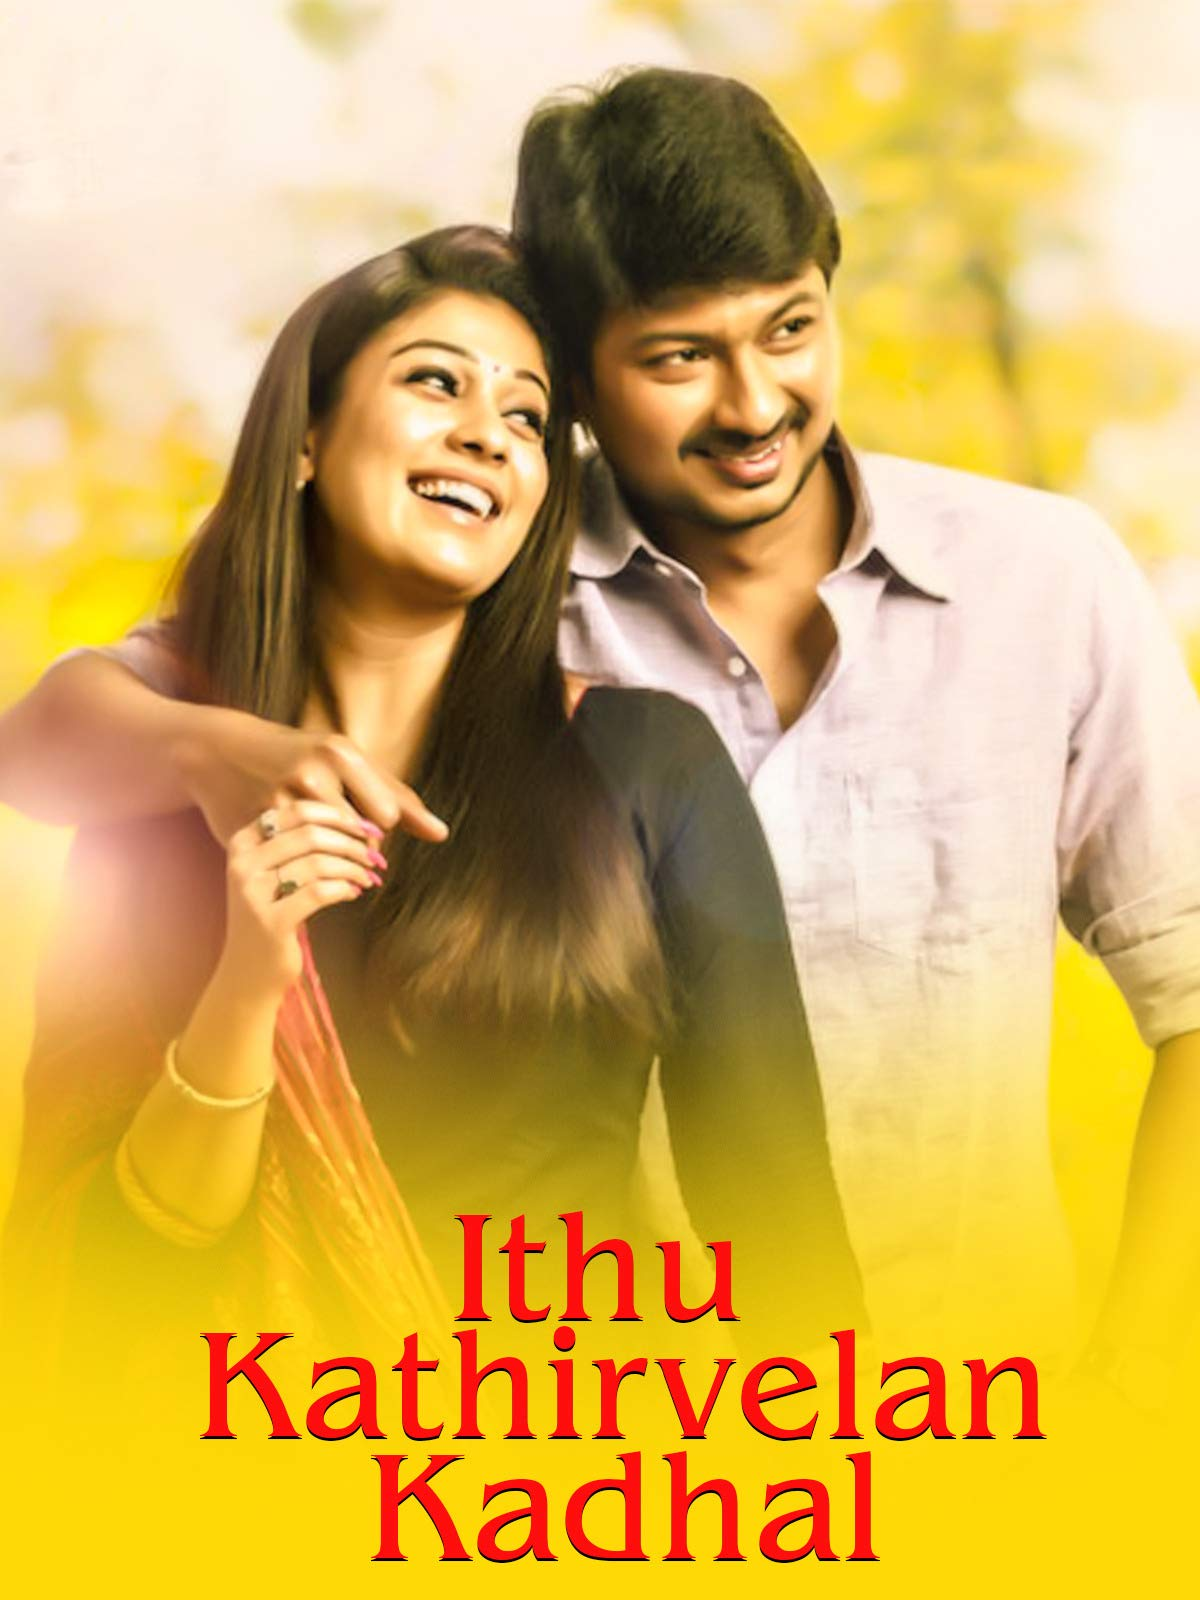 Idhu Kathirvelan Kadhal on Amazon Prime Video UK